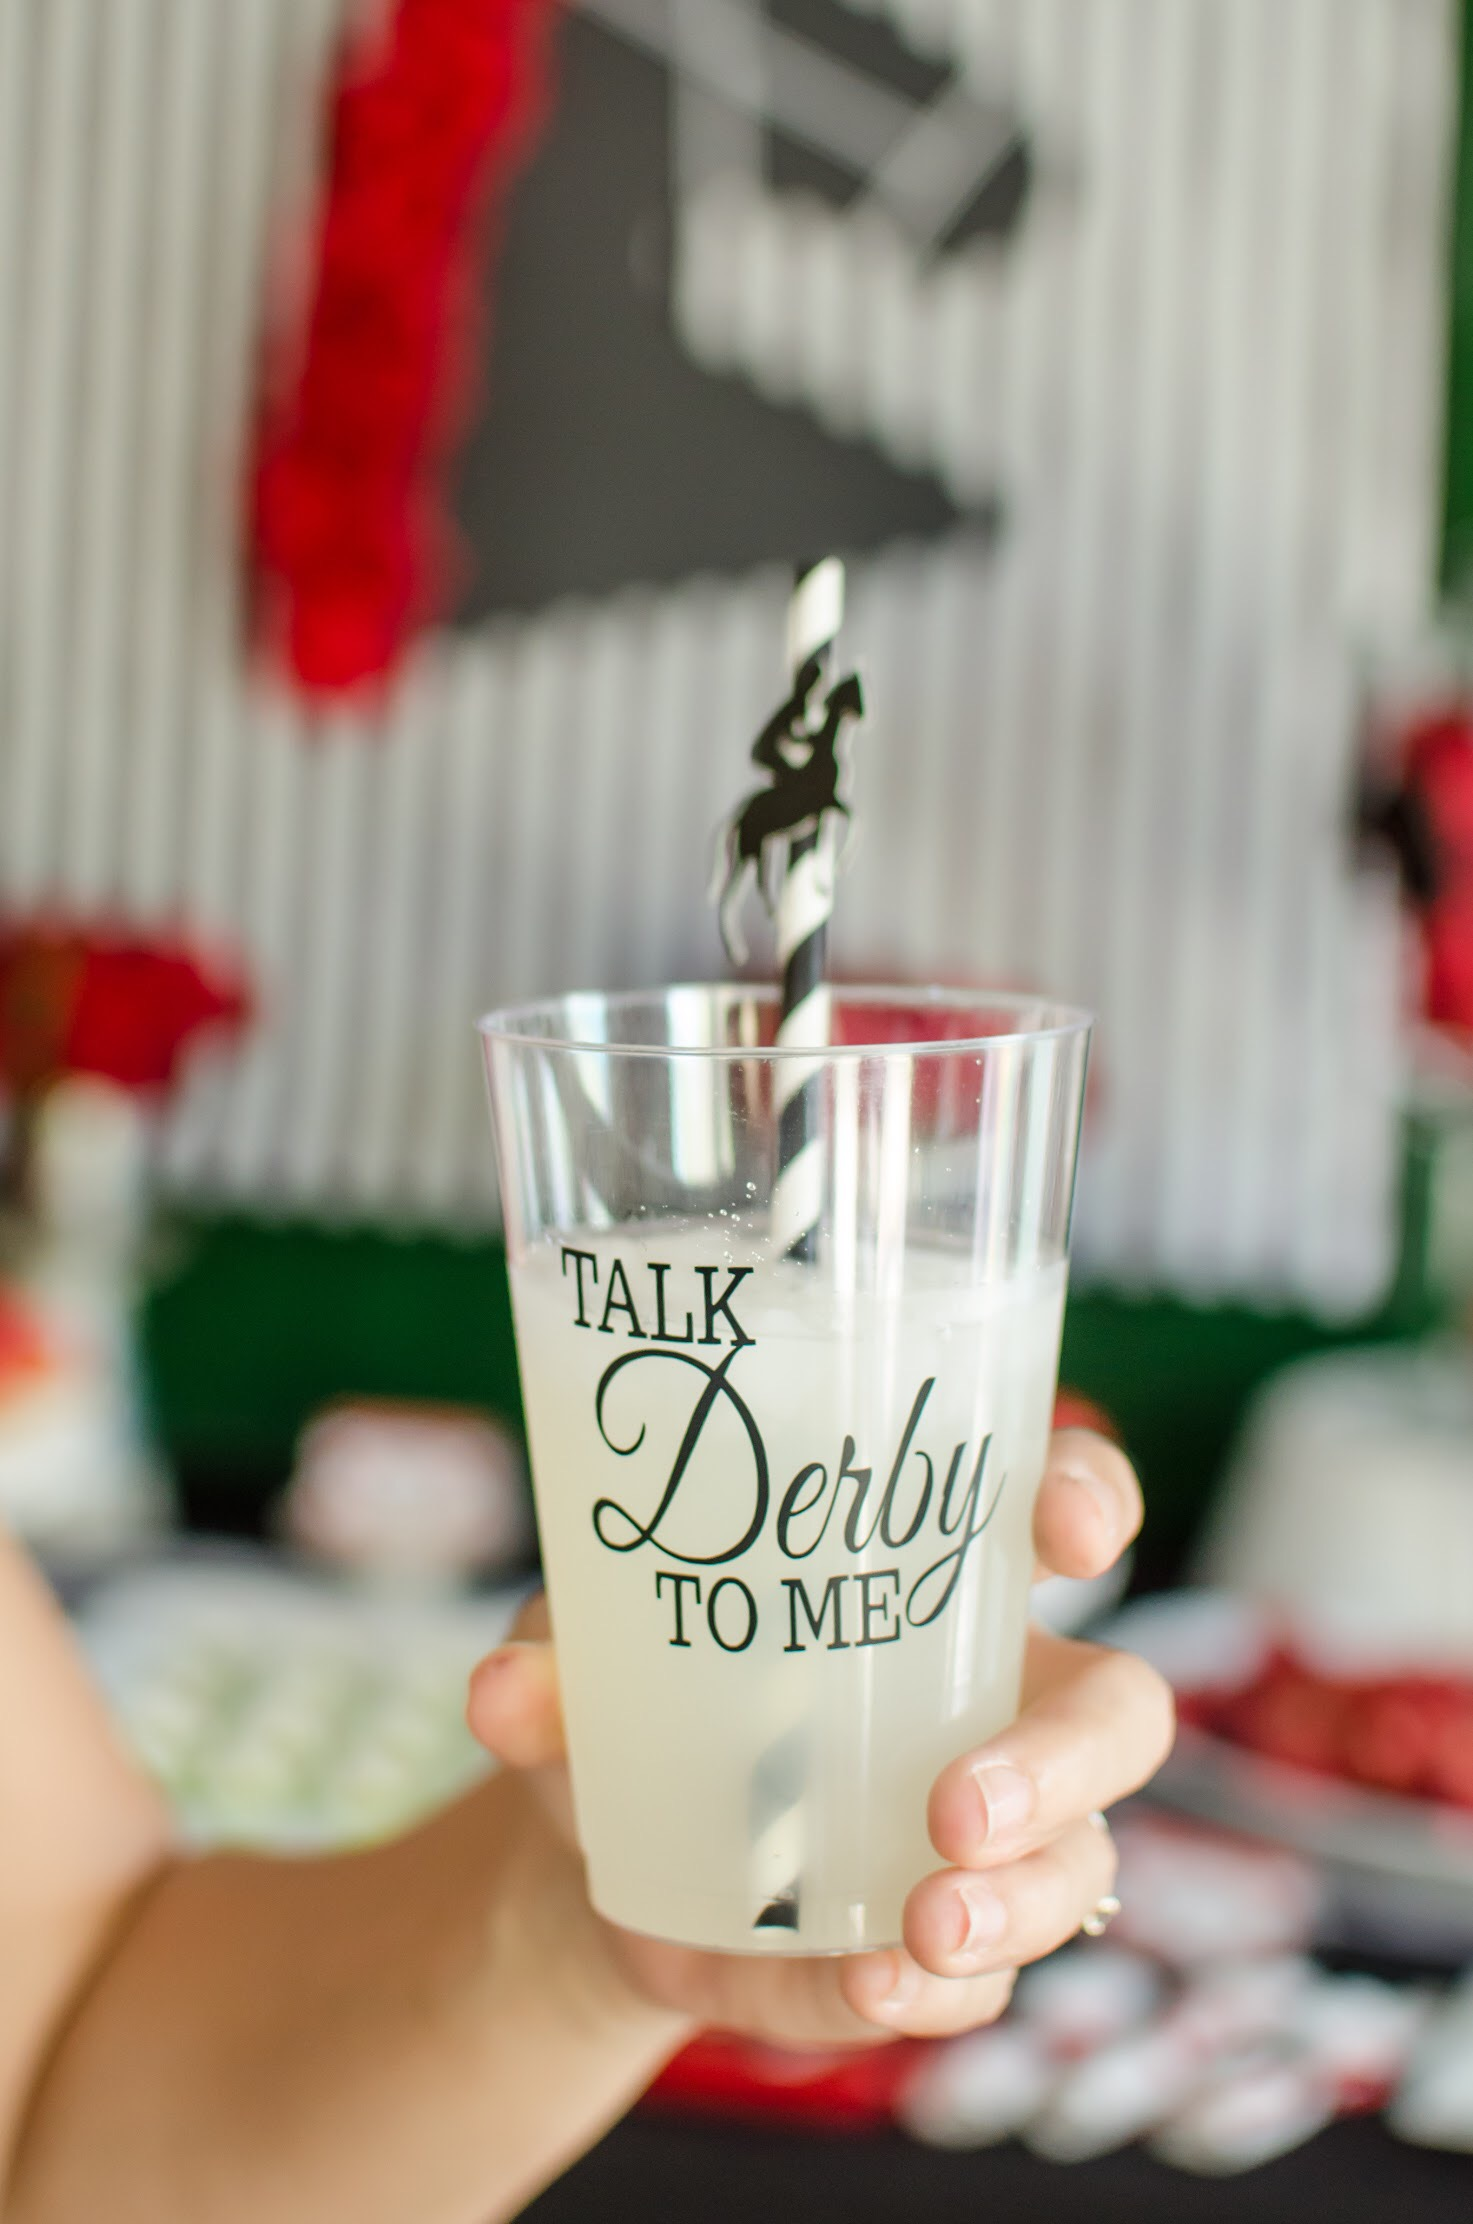 Talk Derby to Me with these creative drink cups for a Kentucky Derby Party. See lots more party ideas on Mint Event Design www.minteventdesign.com #kentuckyderbyparty #kentuckyderby #partyideas #derbyday #runfortheroses #partydrink